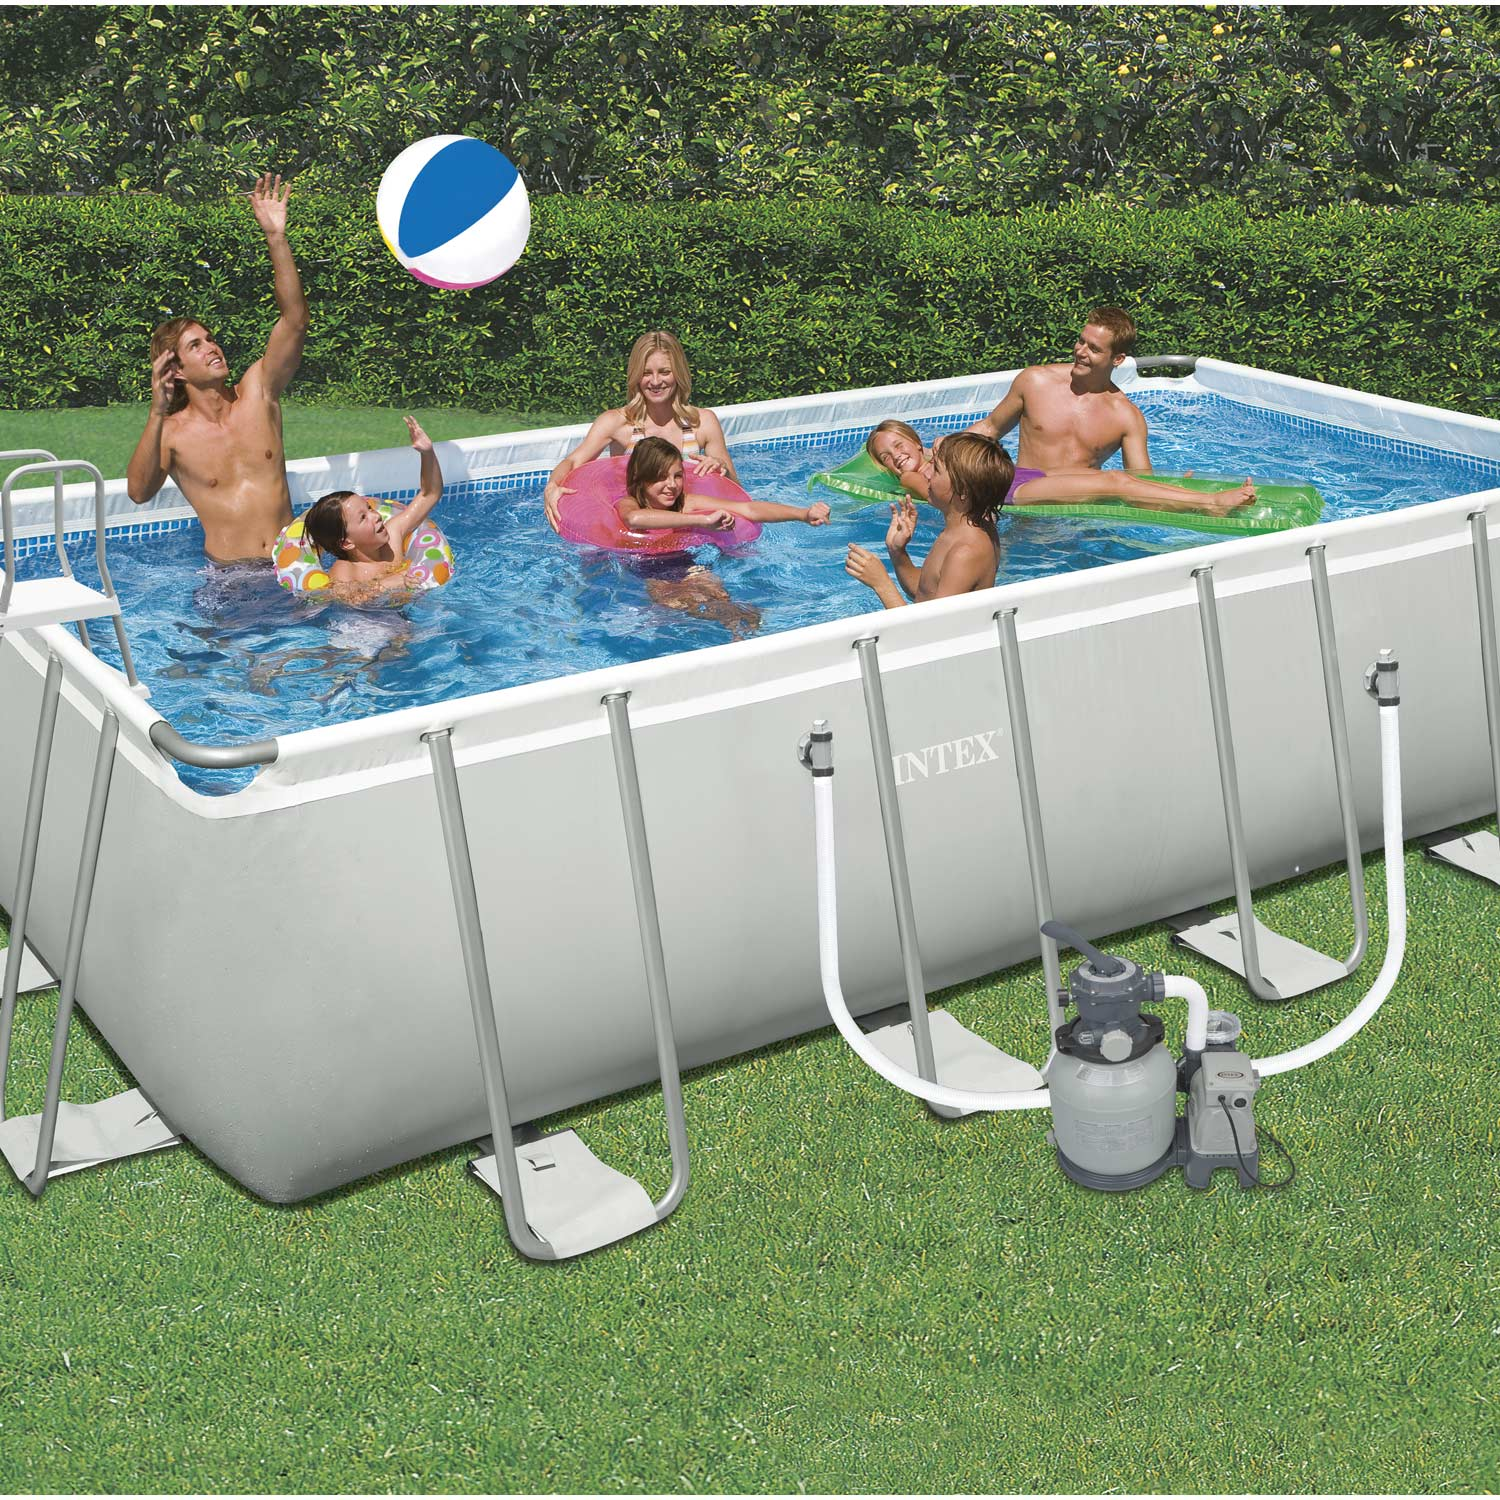 Piscine hors sol autoportante tubulaire intex l x l for Leroy merlin bache piscine